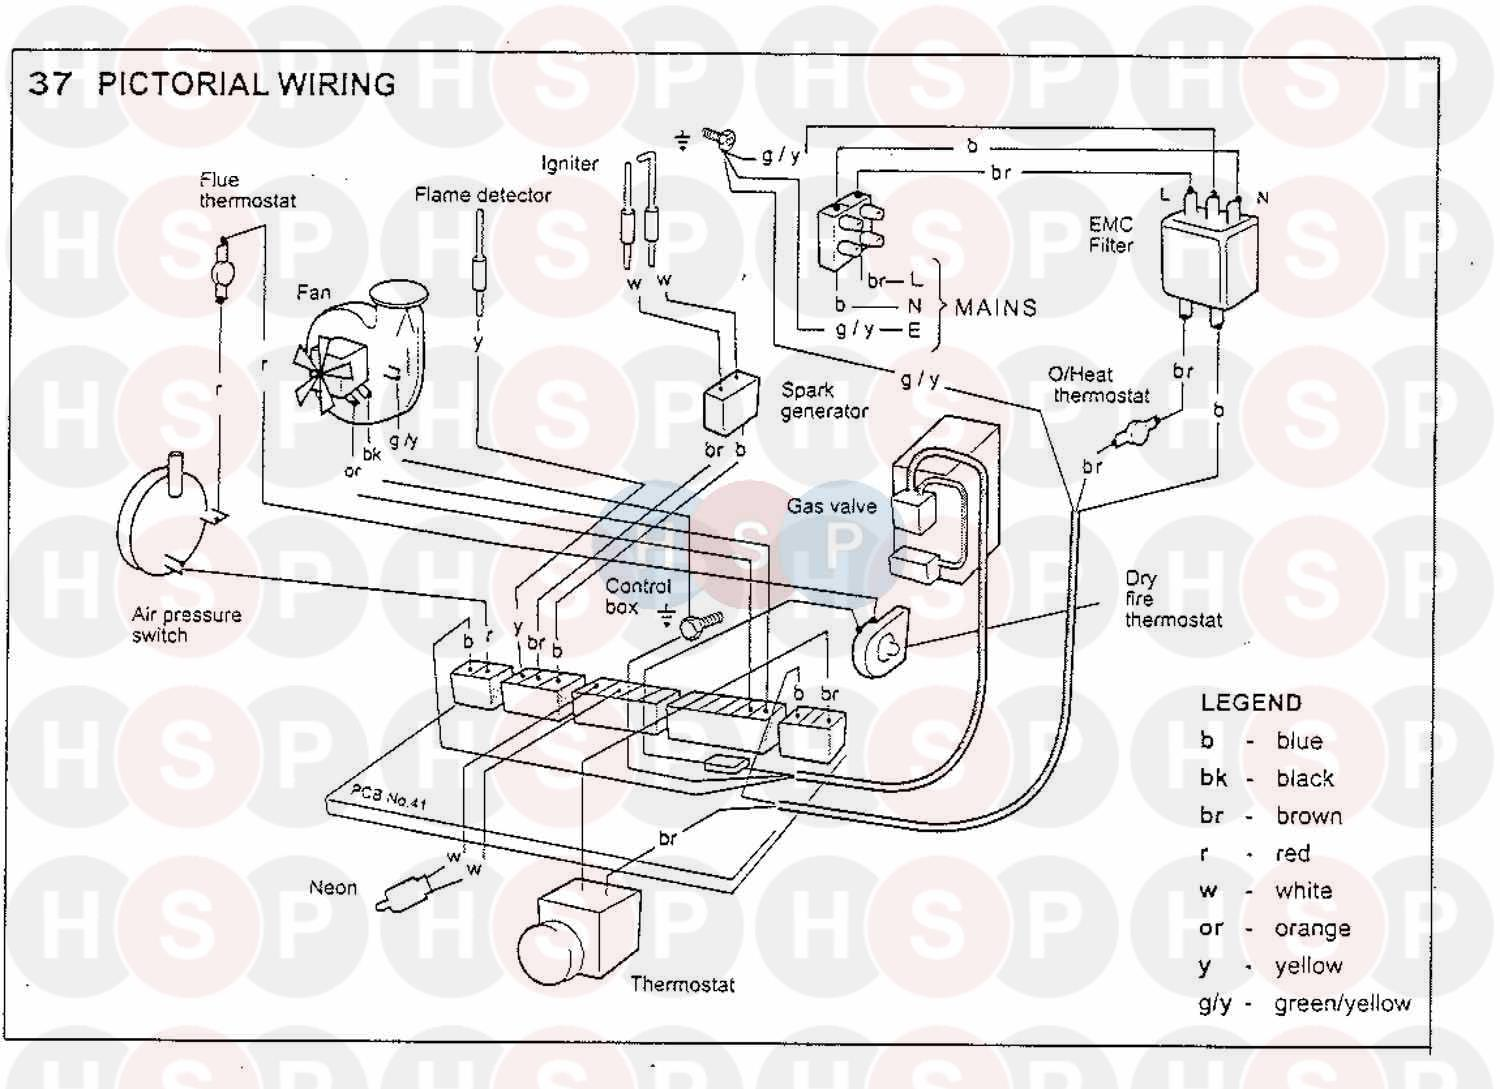 Ideal Minimiser 50ff Wiring Diagram 3 Heating Spare Parts Air Pressor Click The To Open It On A New Page